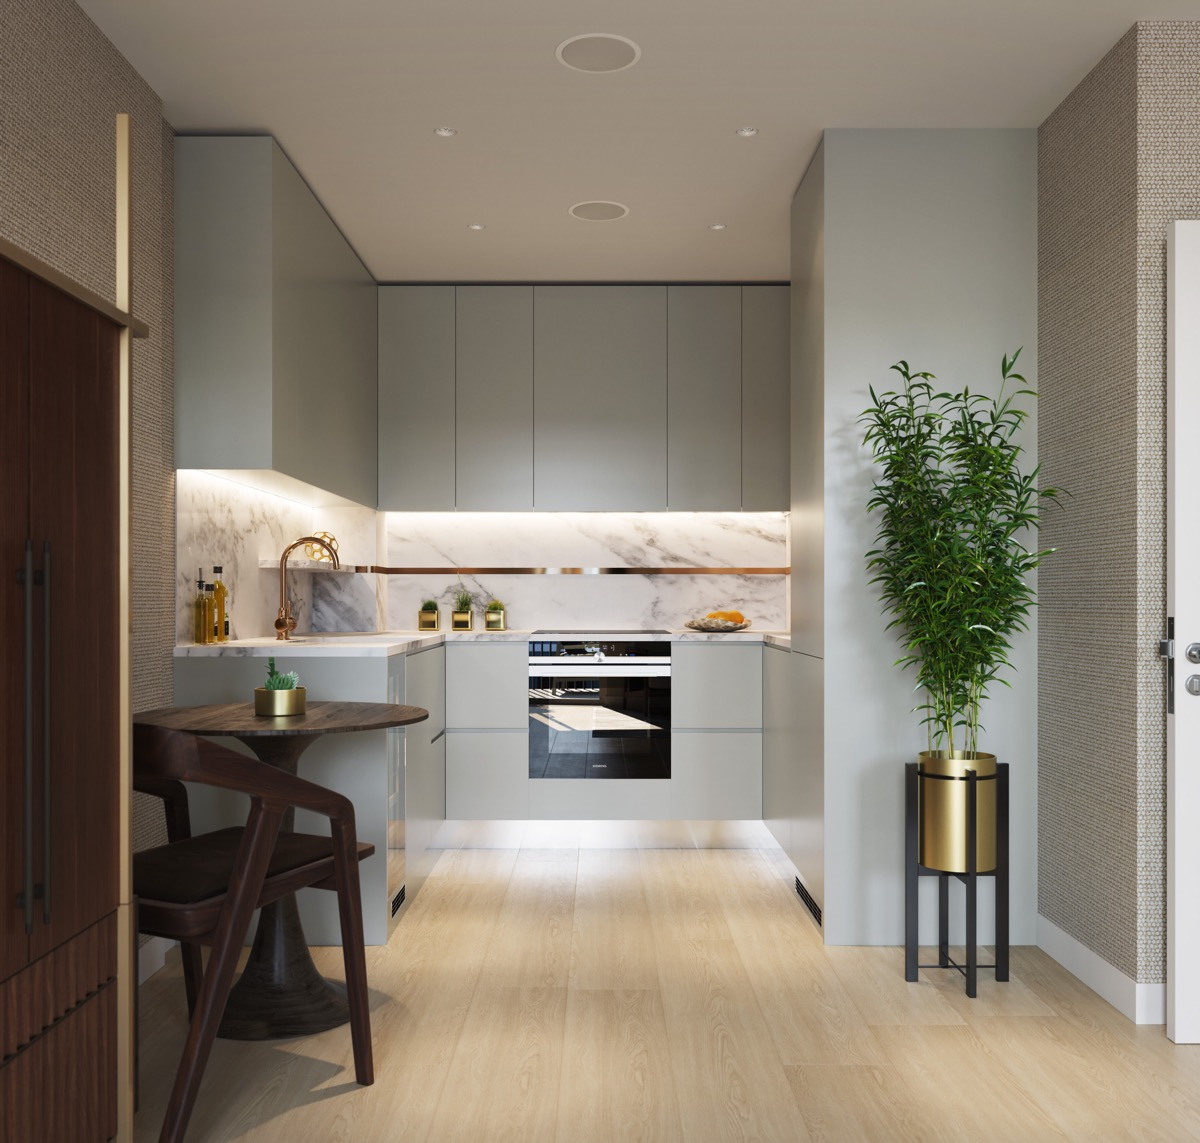 Small Kitchen Design U Shaped: 50 Unique U-Shaped Kitchens And Tips You Can Use From Them